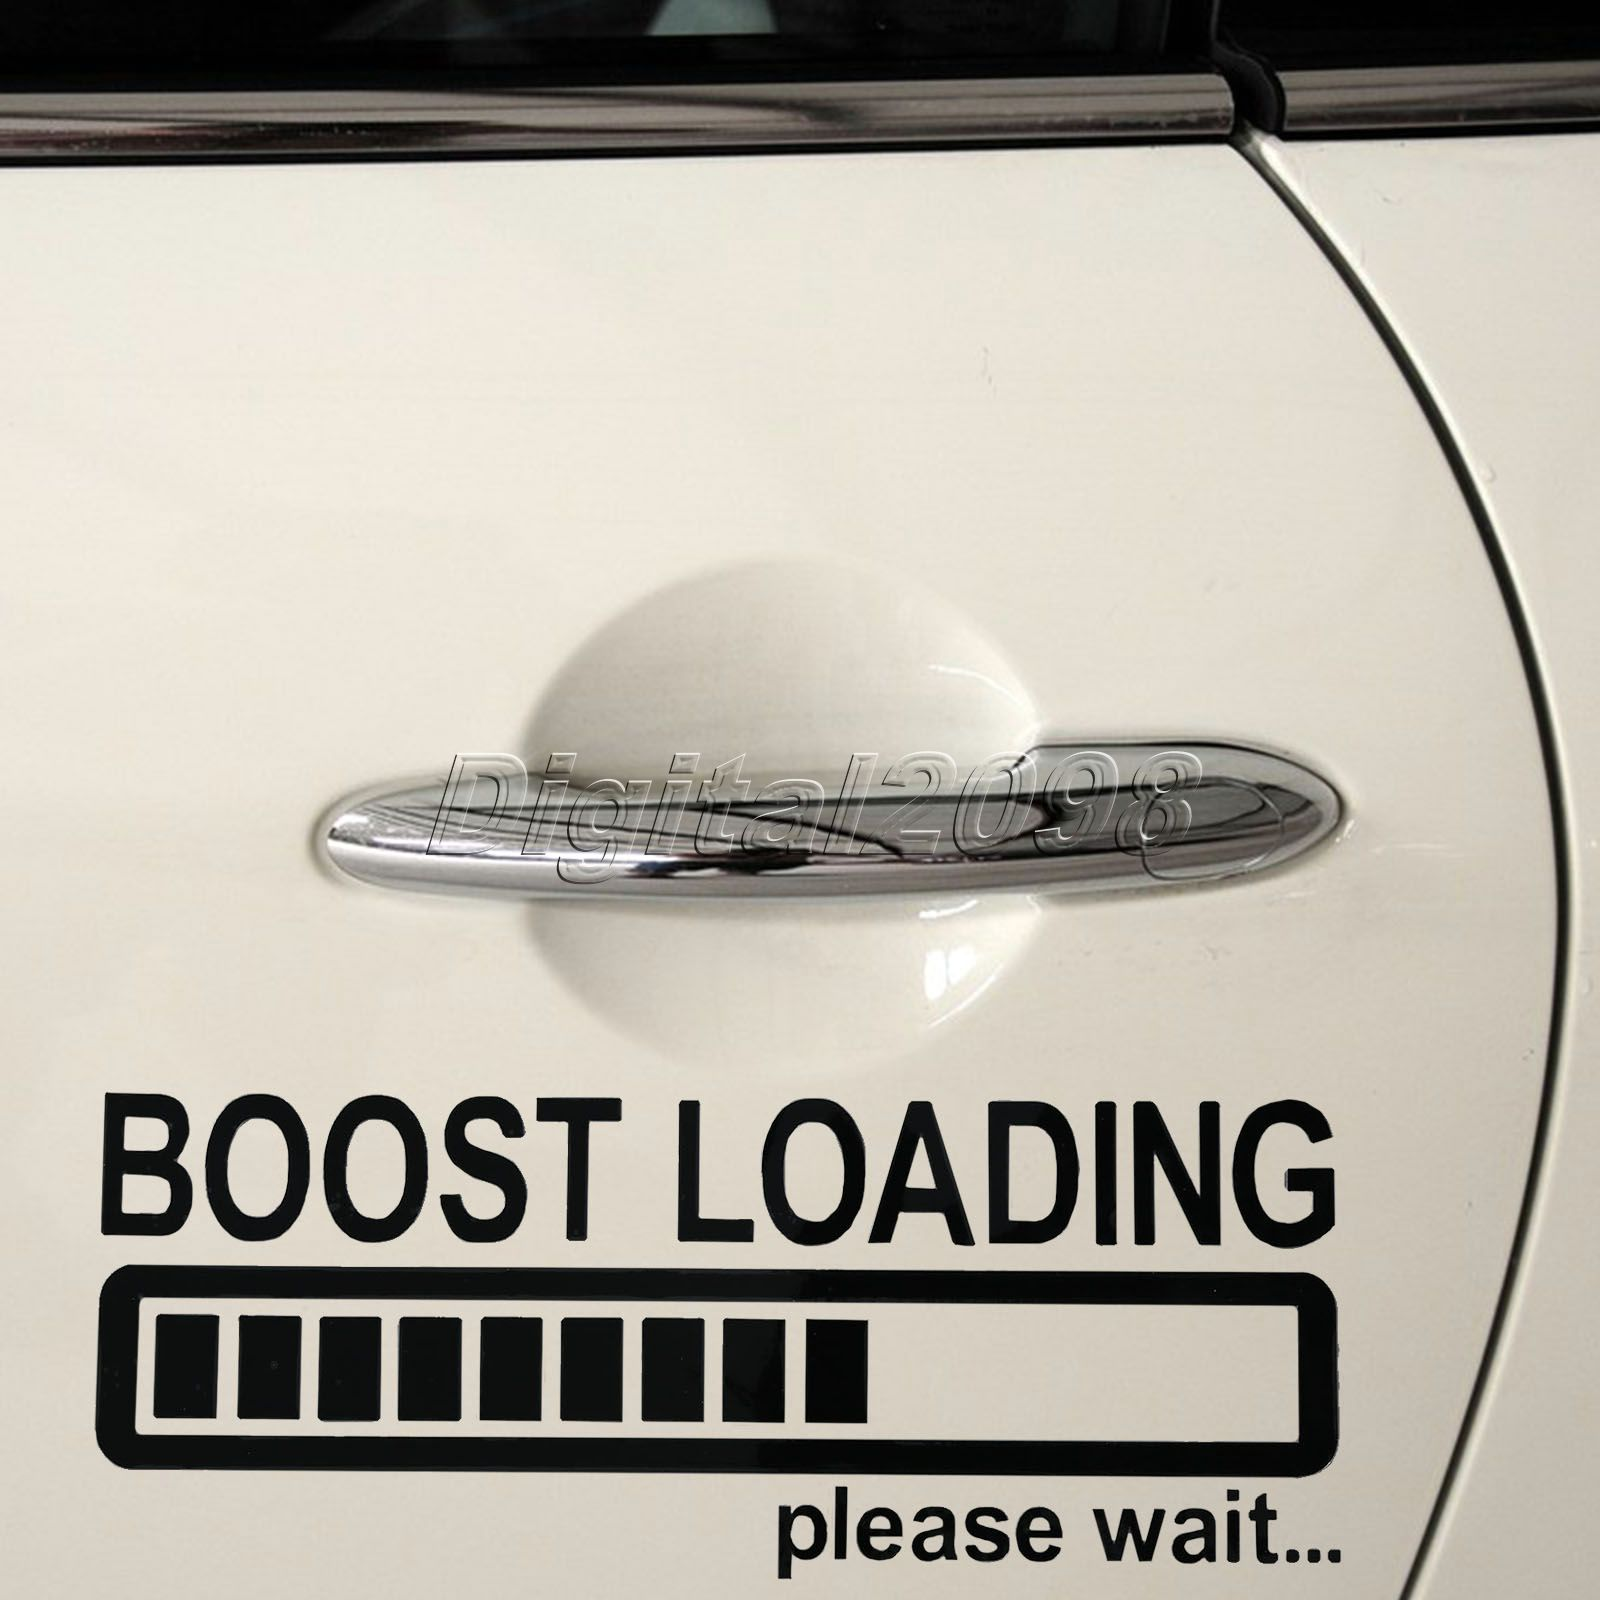 Yetaha New BOOST LOADING...please wait Car Stickers 19.9*7.9cm Car Styling Sticker Reflective Car Decal for JDM Turbo Diesel